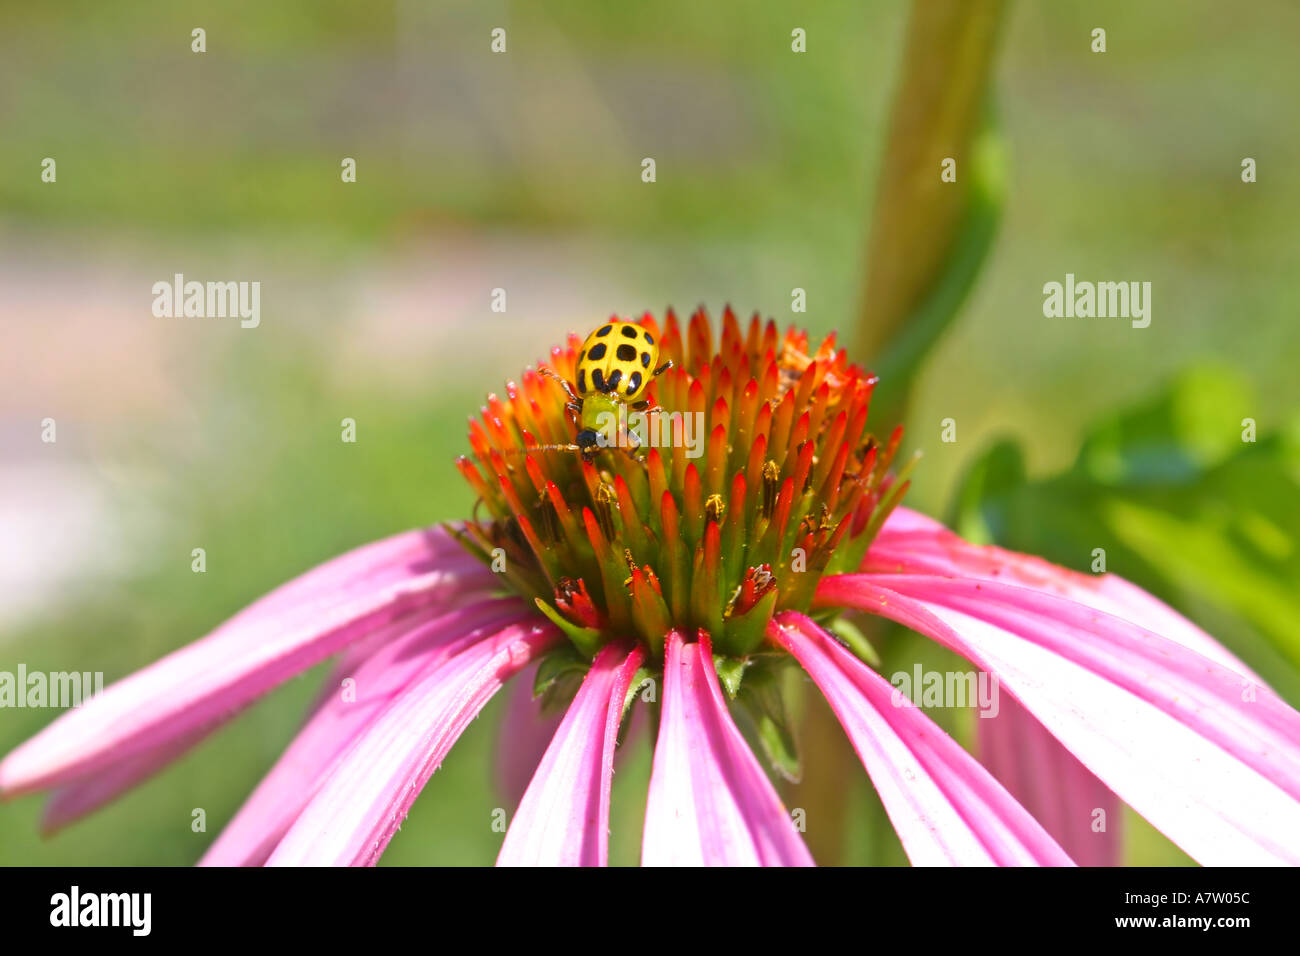 Pink Echinacea Flower with a Yellow Lady Bug - Stock Image